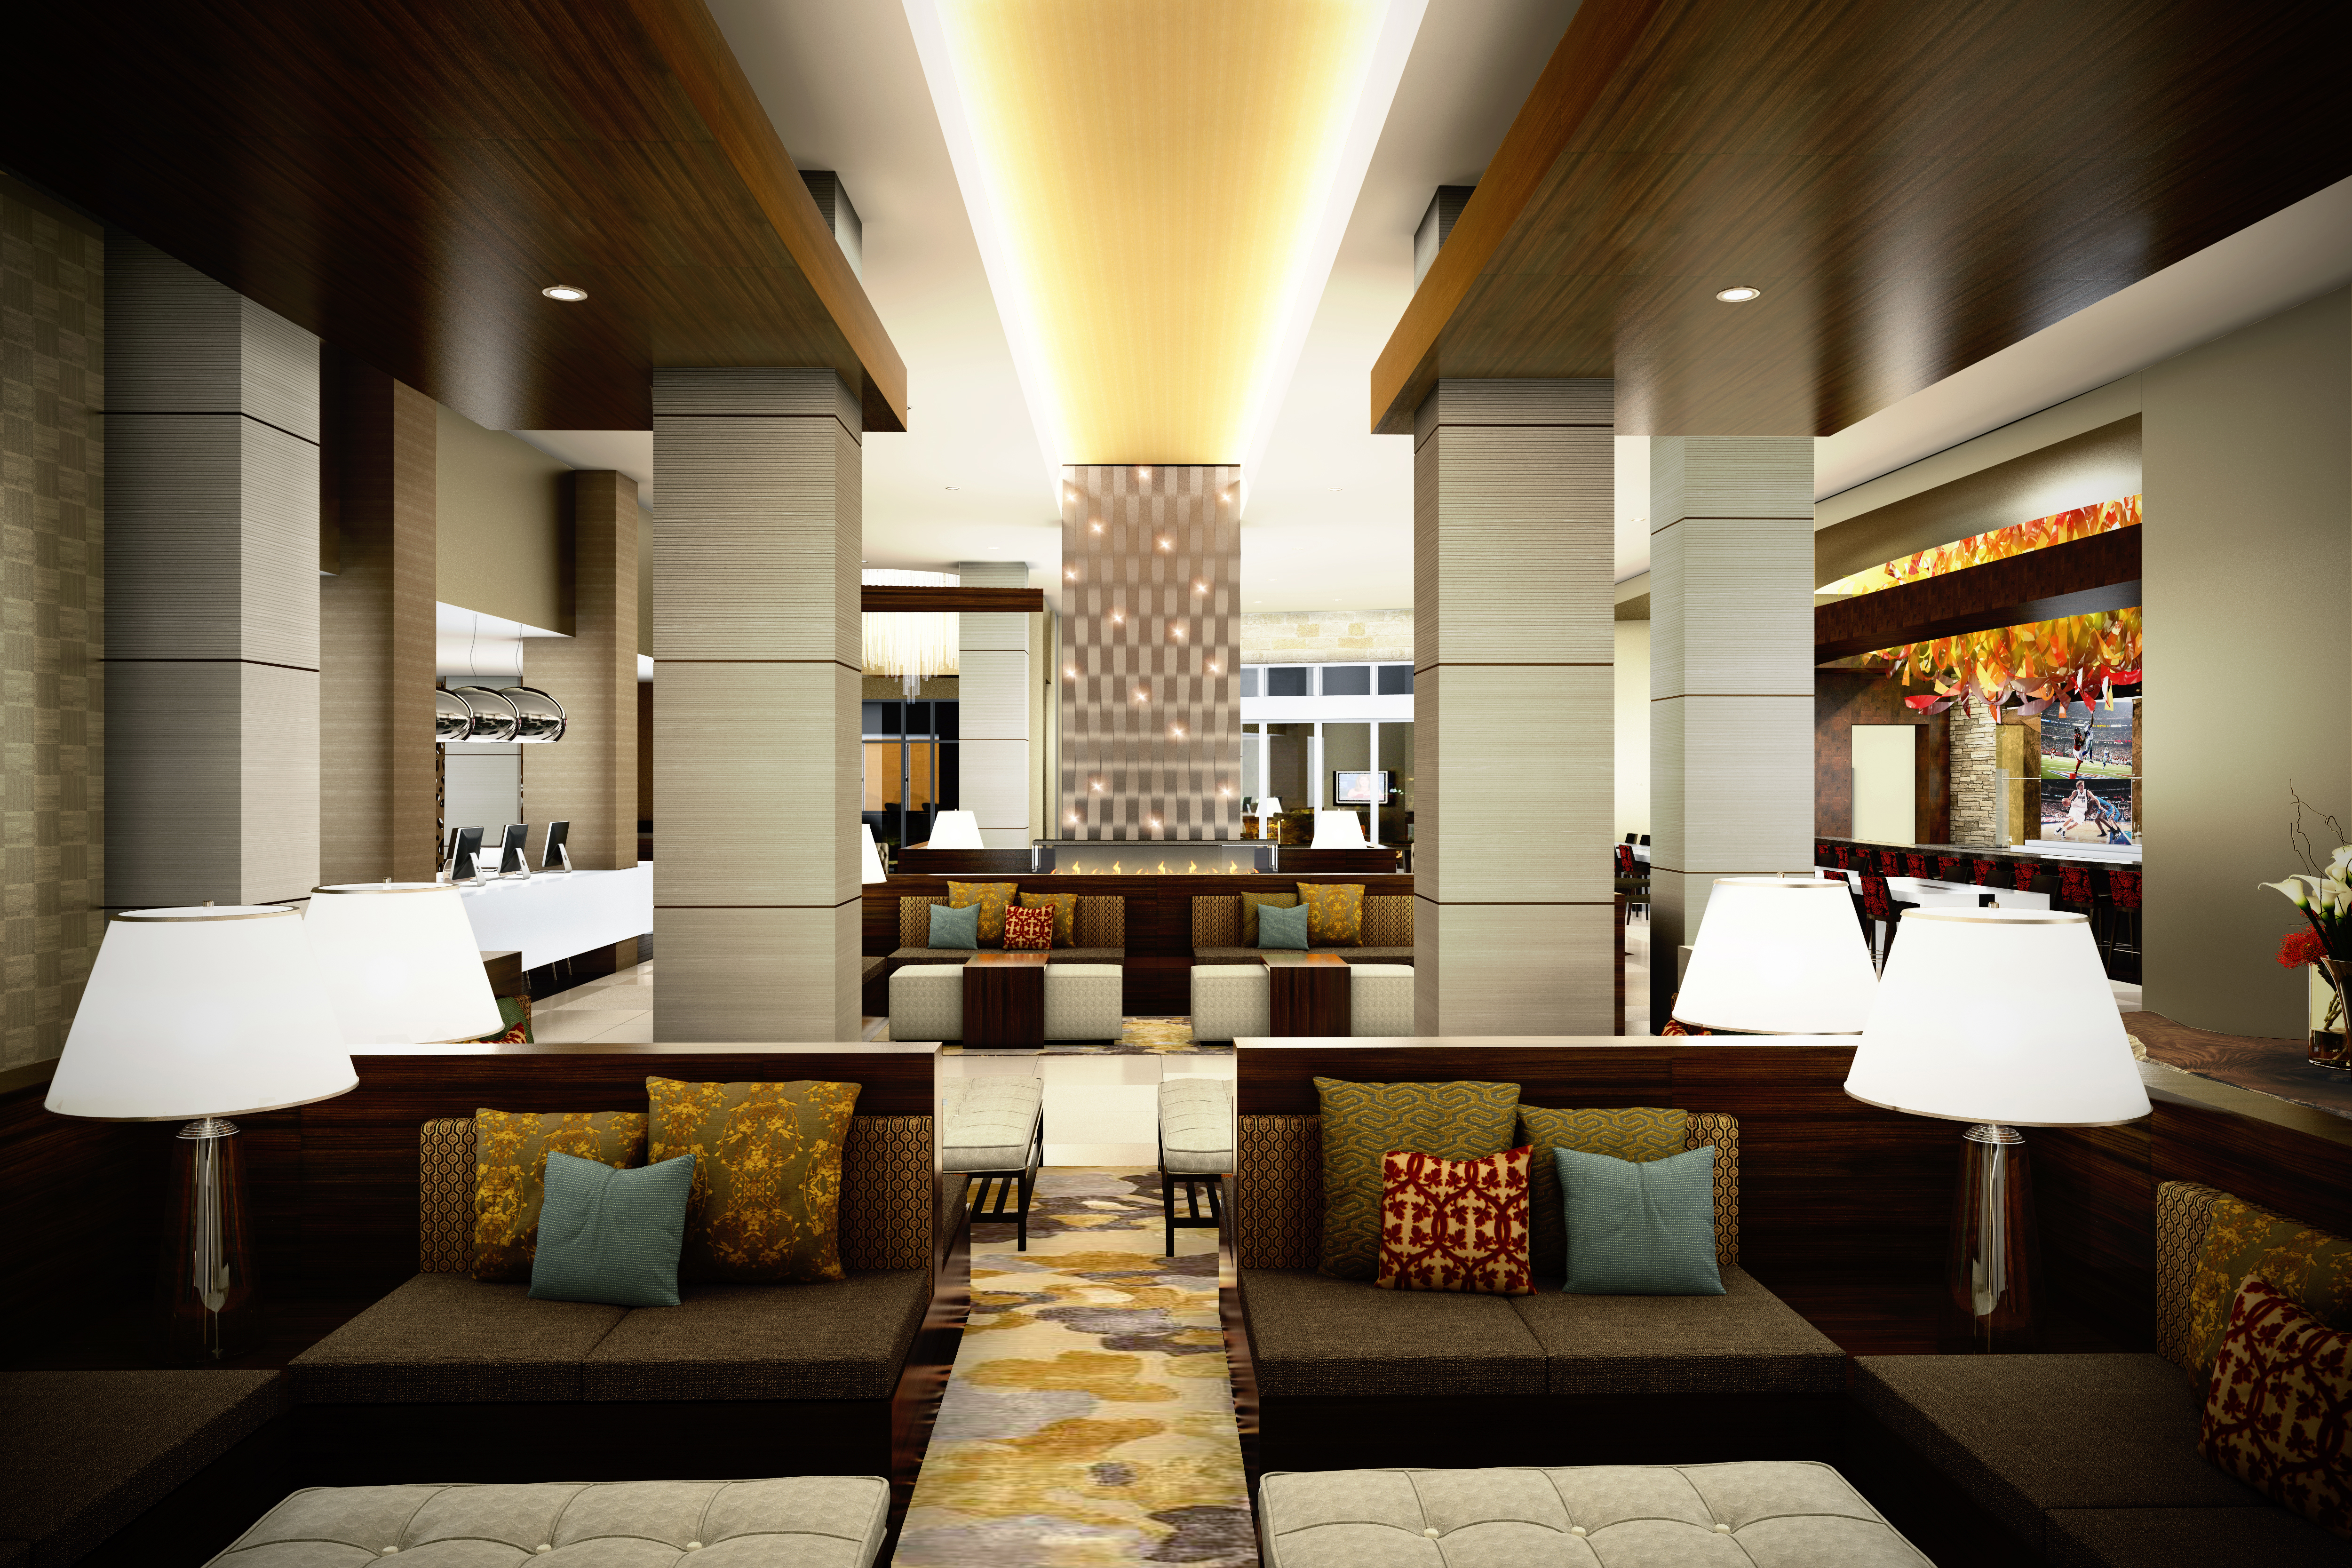 Hilton Worldwide announced the opening of Hilton Dallas/Plano Granite Park, a 299-room newly-built Hilton Hotels & Resorts property in the prestigious community of Granite Park in Plano, Texas. (Photo: Hilton Hotels & Resorts)